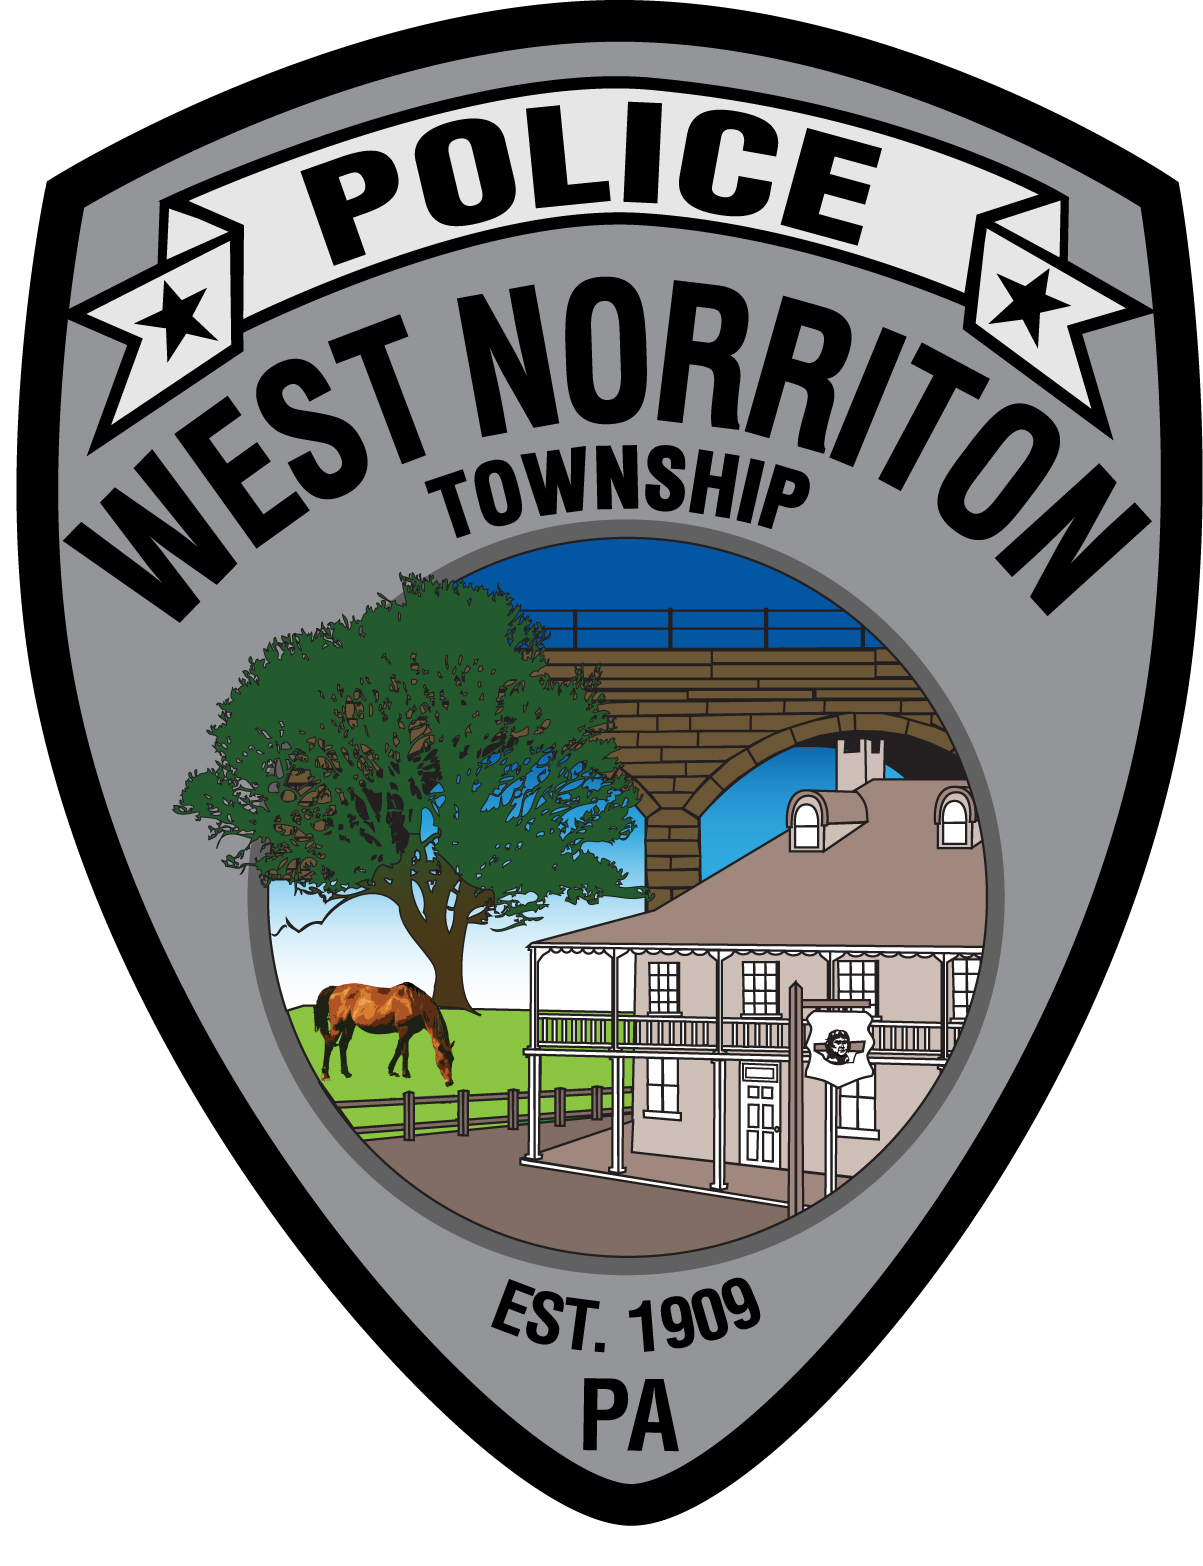 Police | West Norriton Township, PA - Official Website